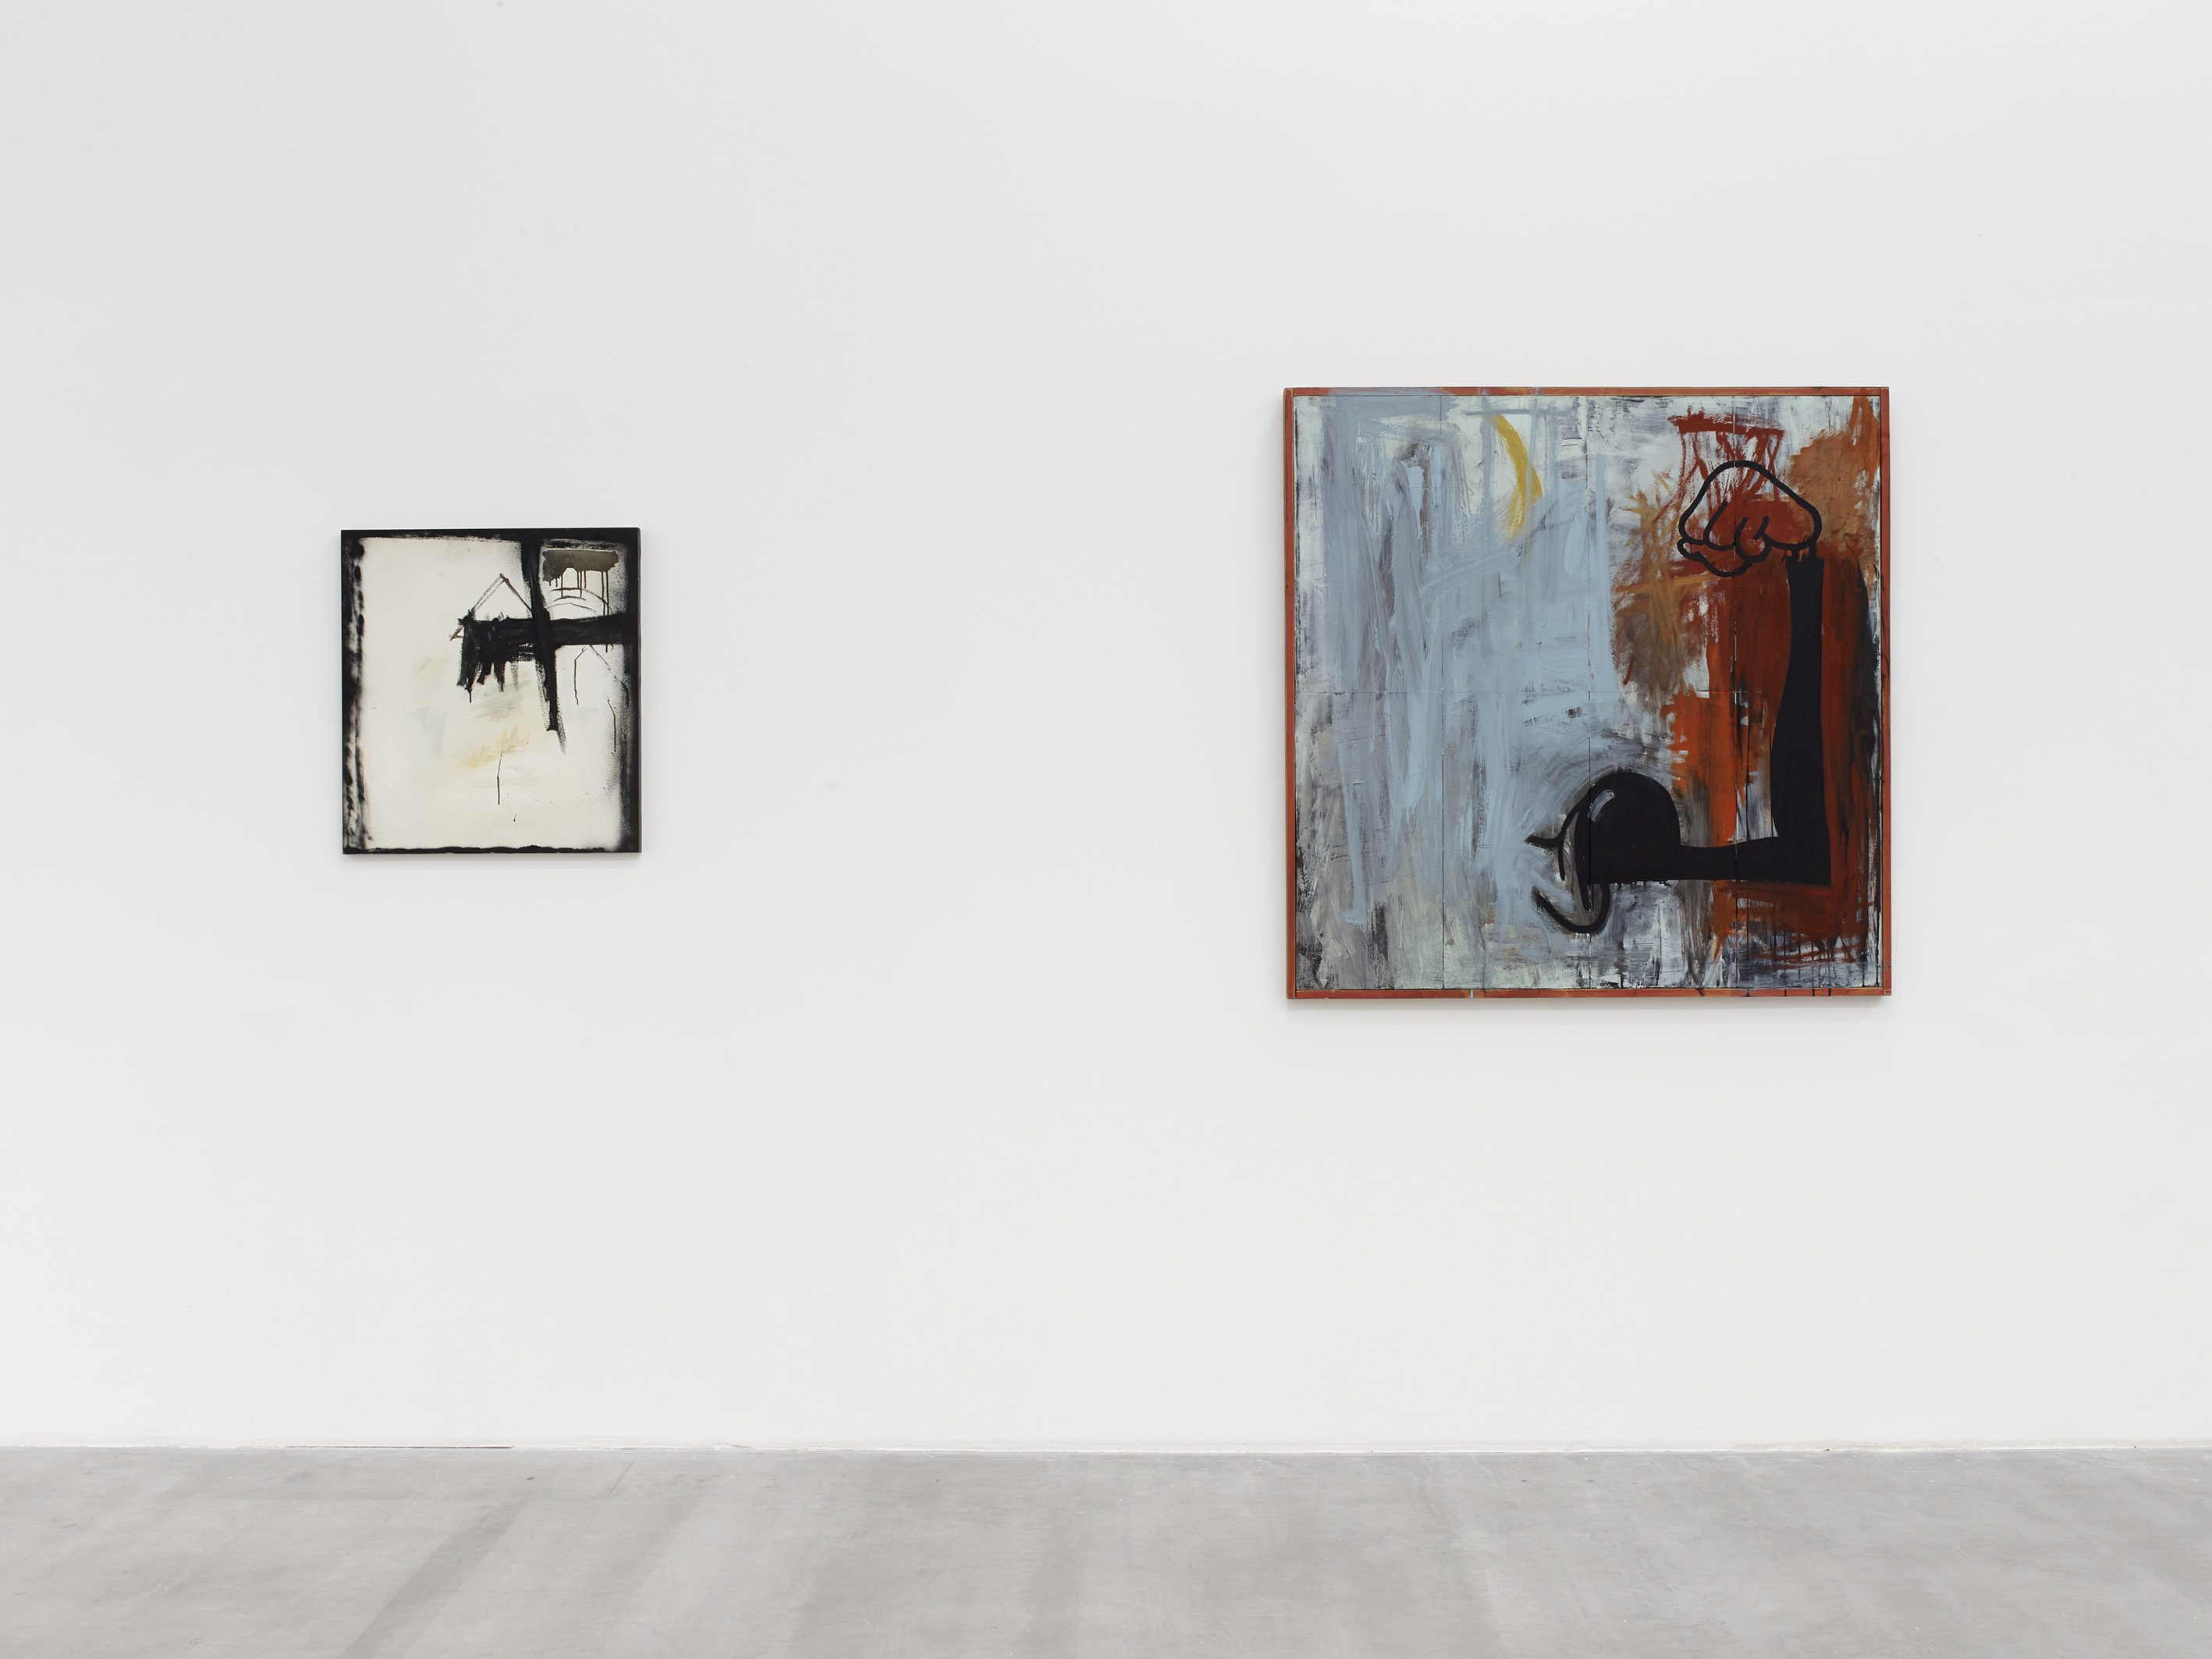 Walter Swennen, Untitled, 1988 and Goofy, 1989